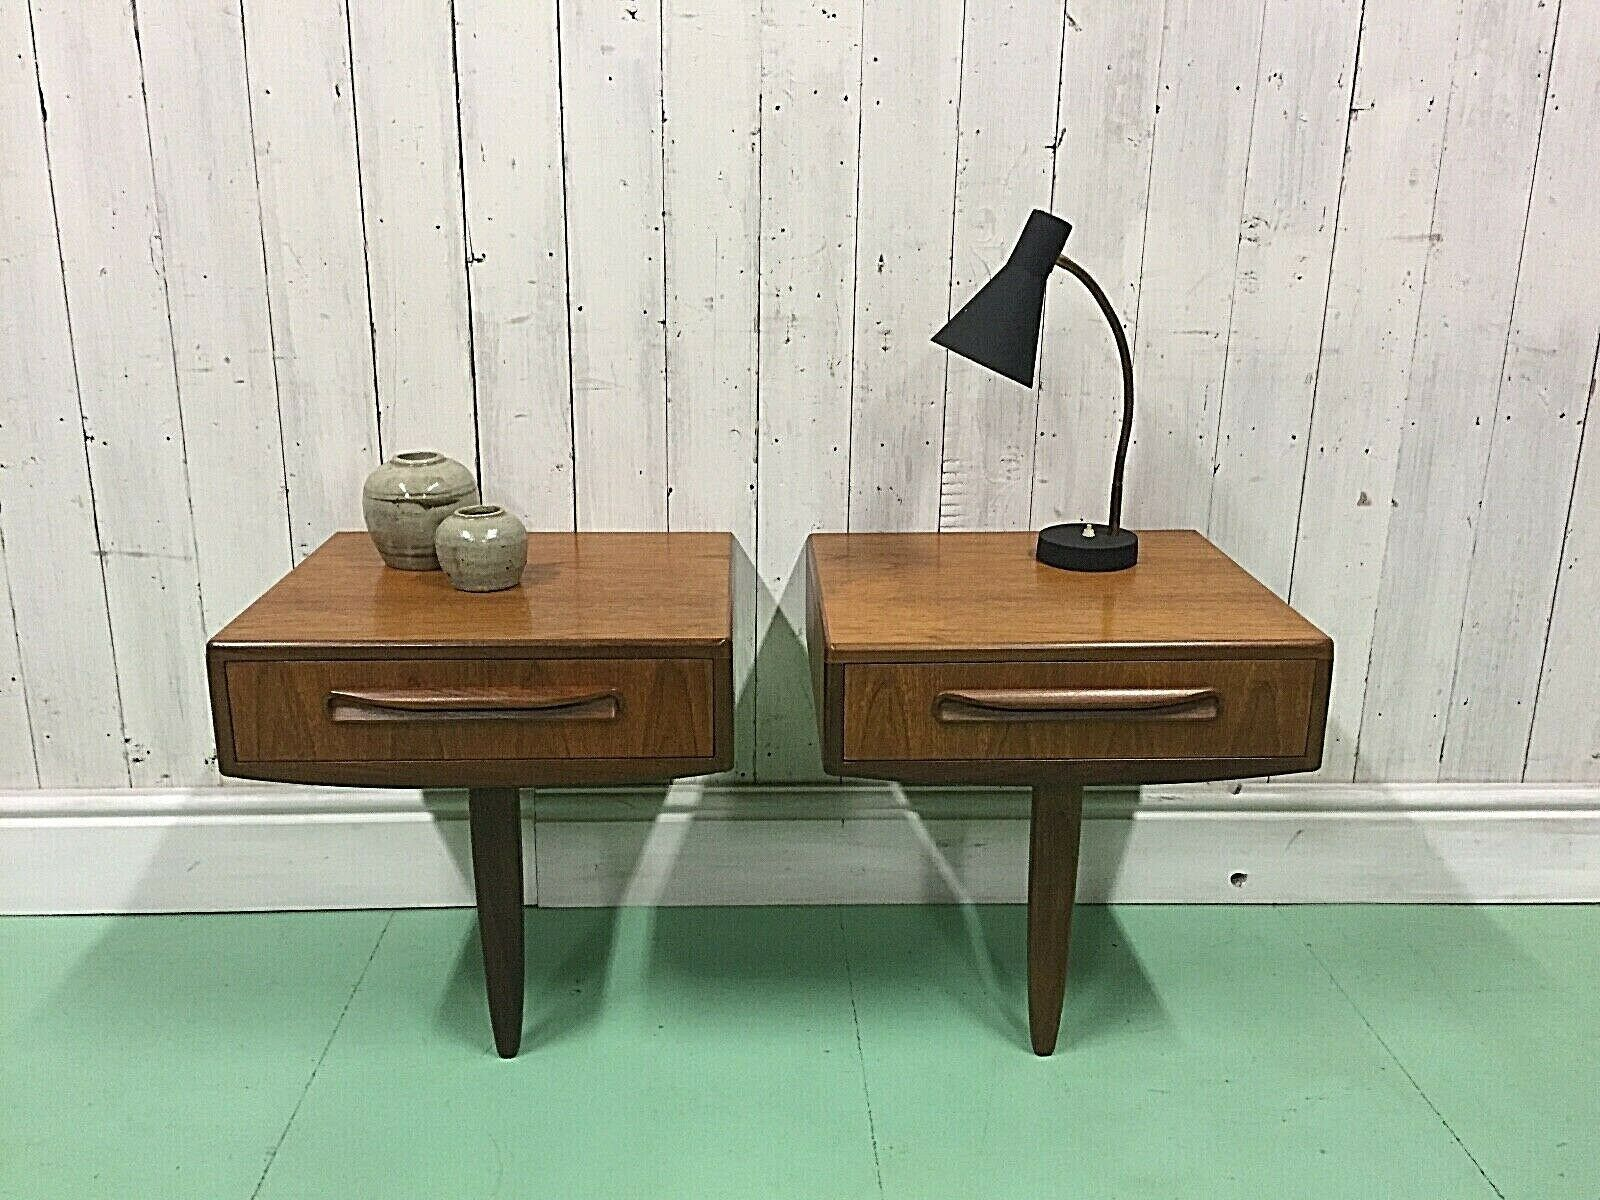 pair of gplan bedside cabinets floating retro mid century danish table vtg lamp unknown 0